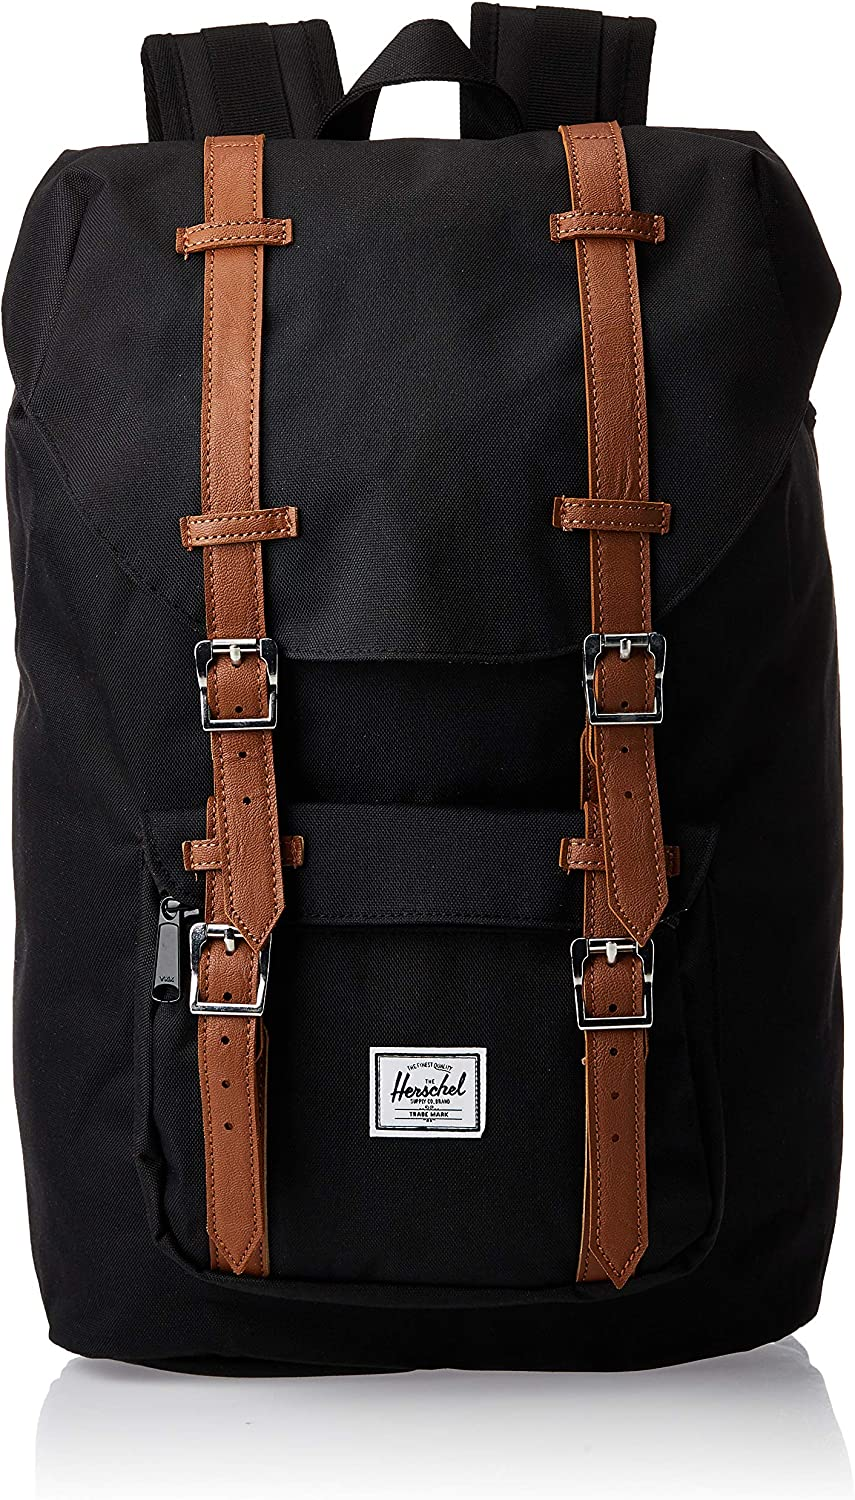 2. Herschel Little America Laptop Backpack, Black/Tan Synthetic Leather, Mid-Volume